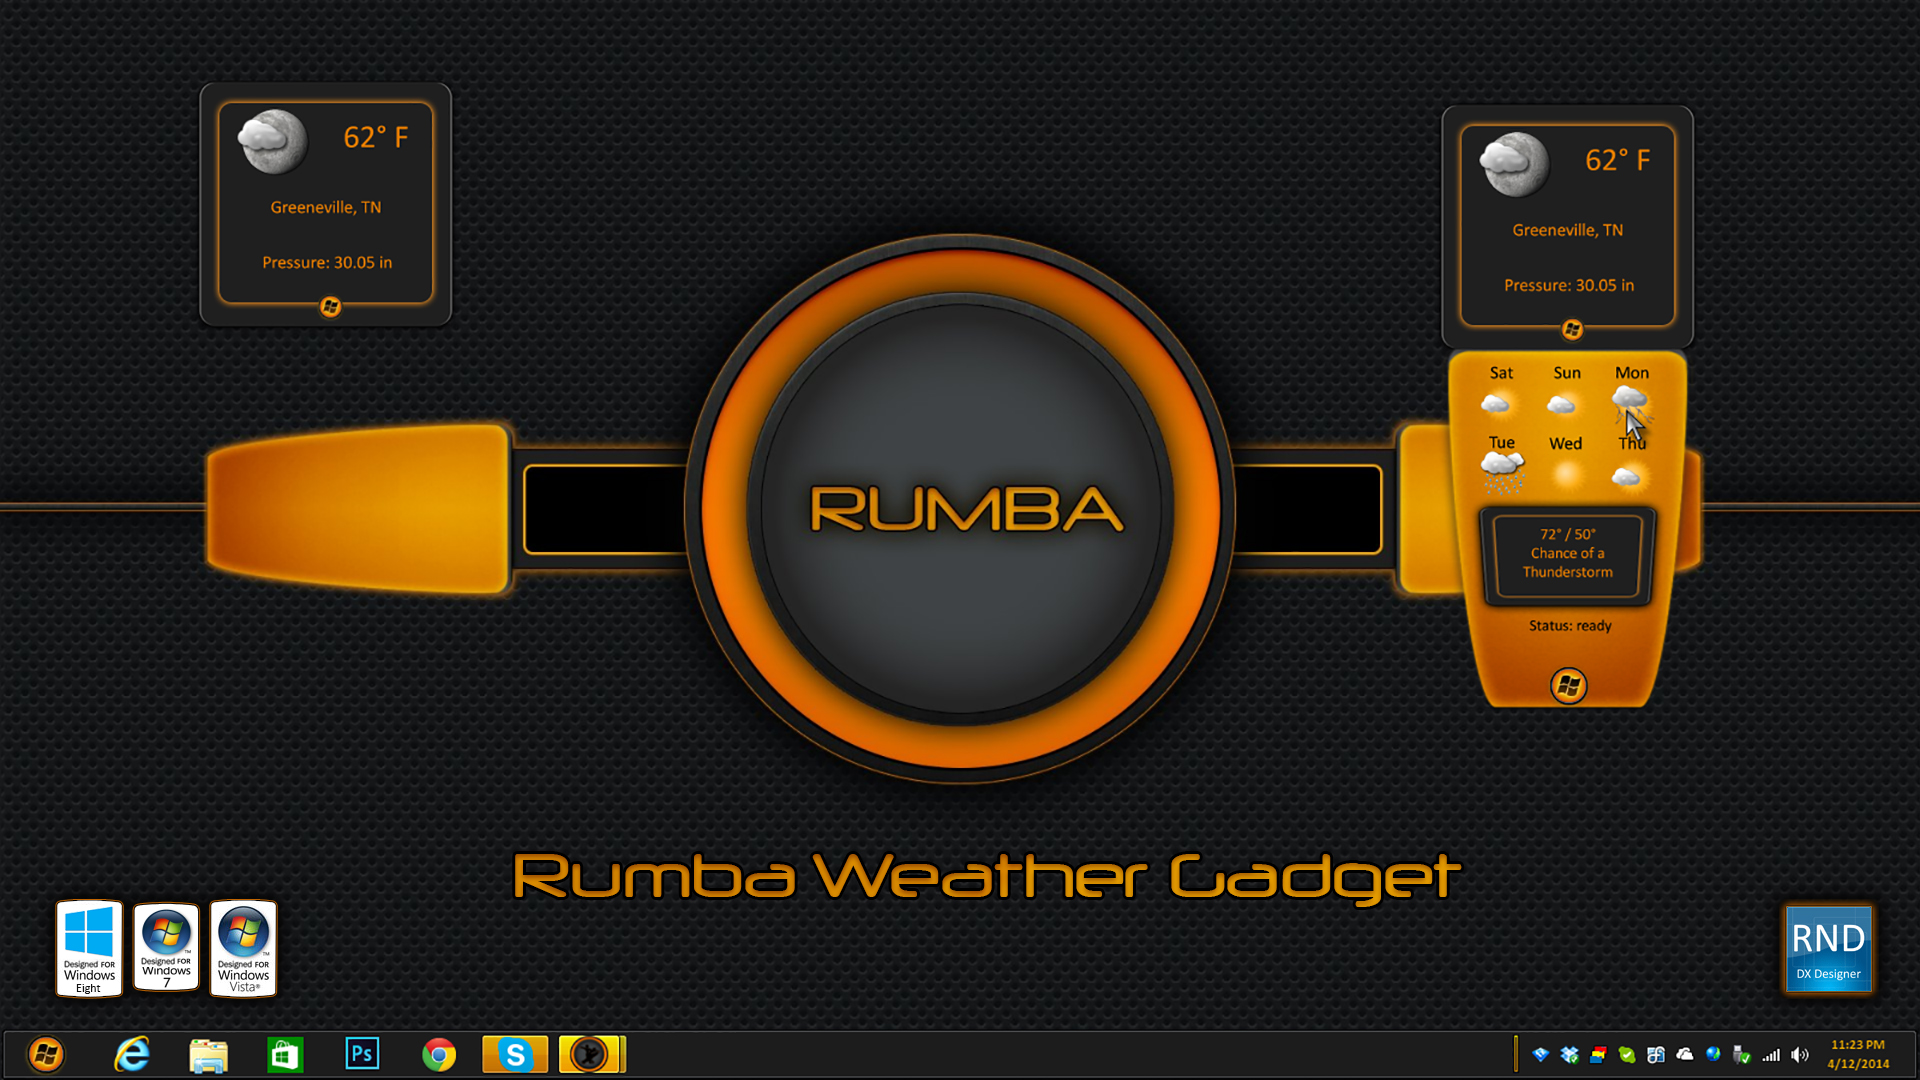 Rumba Weather Gadget